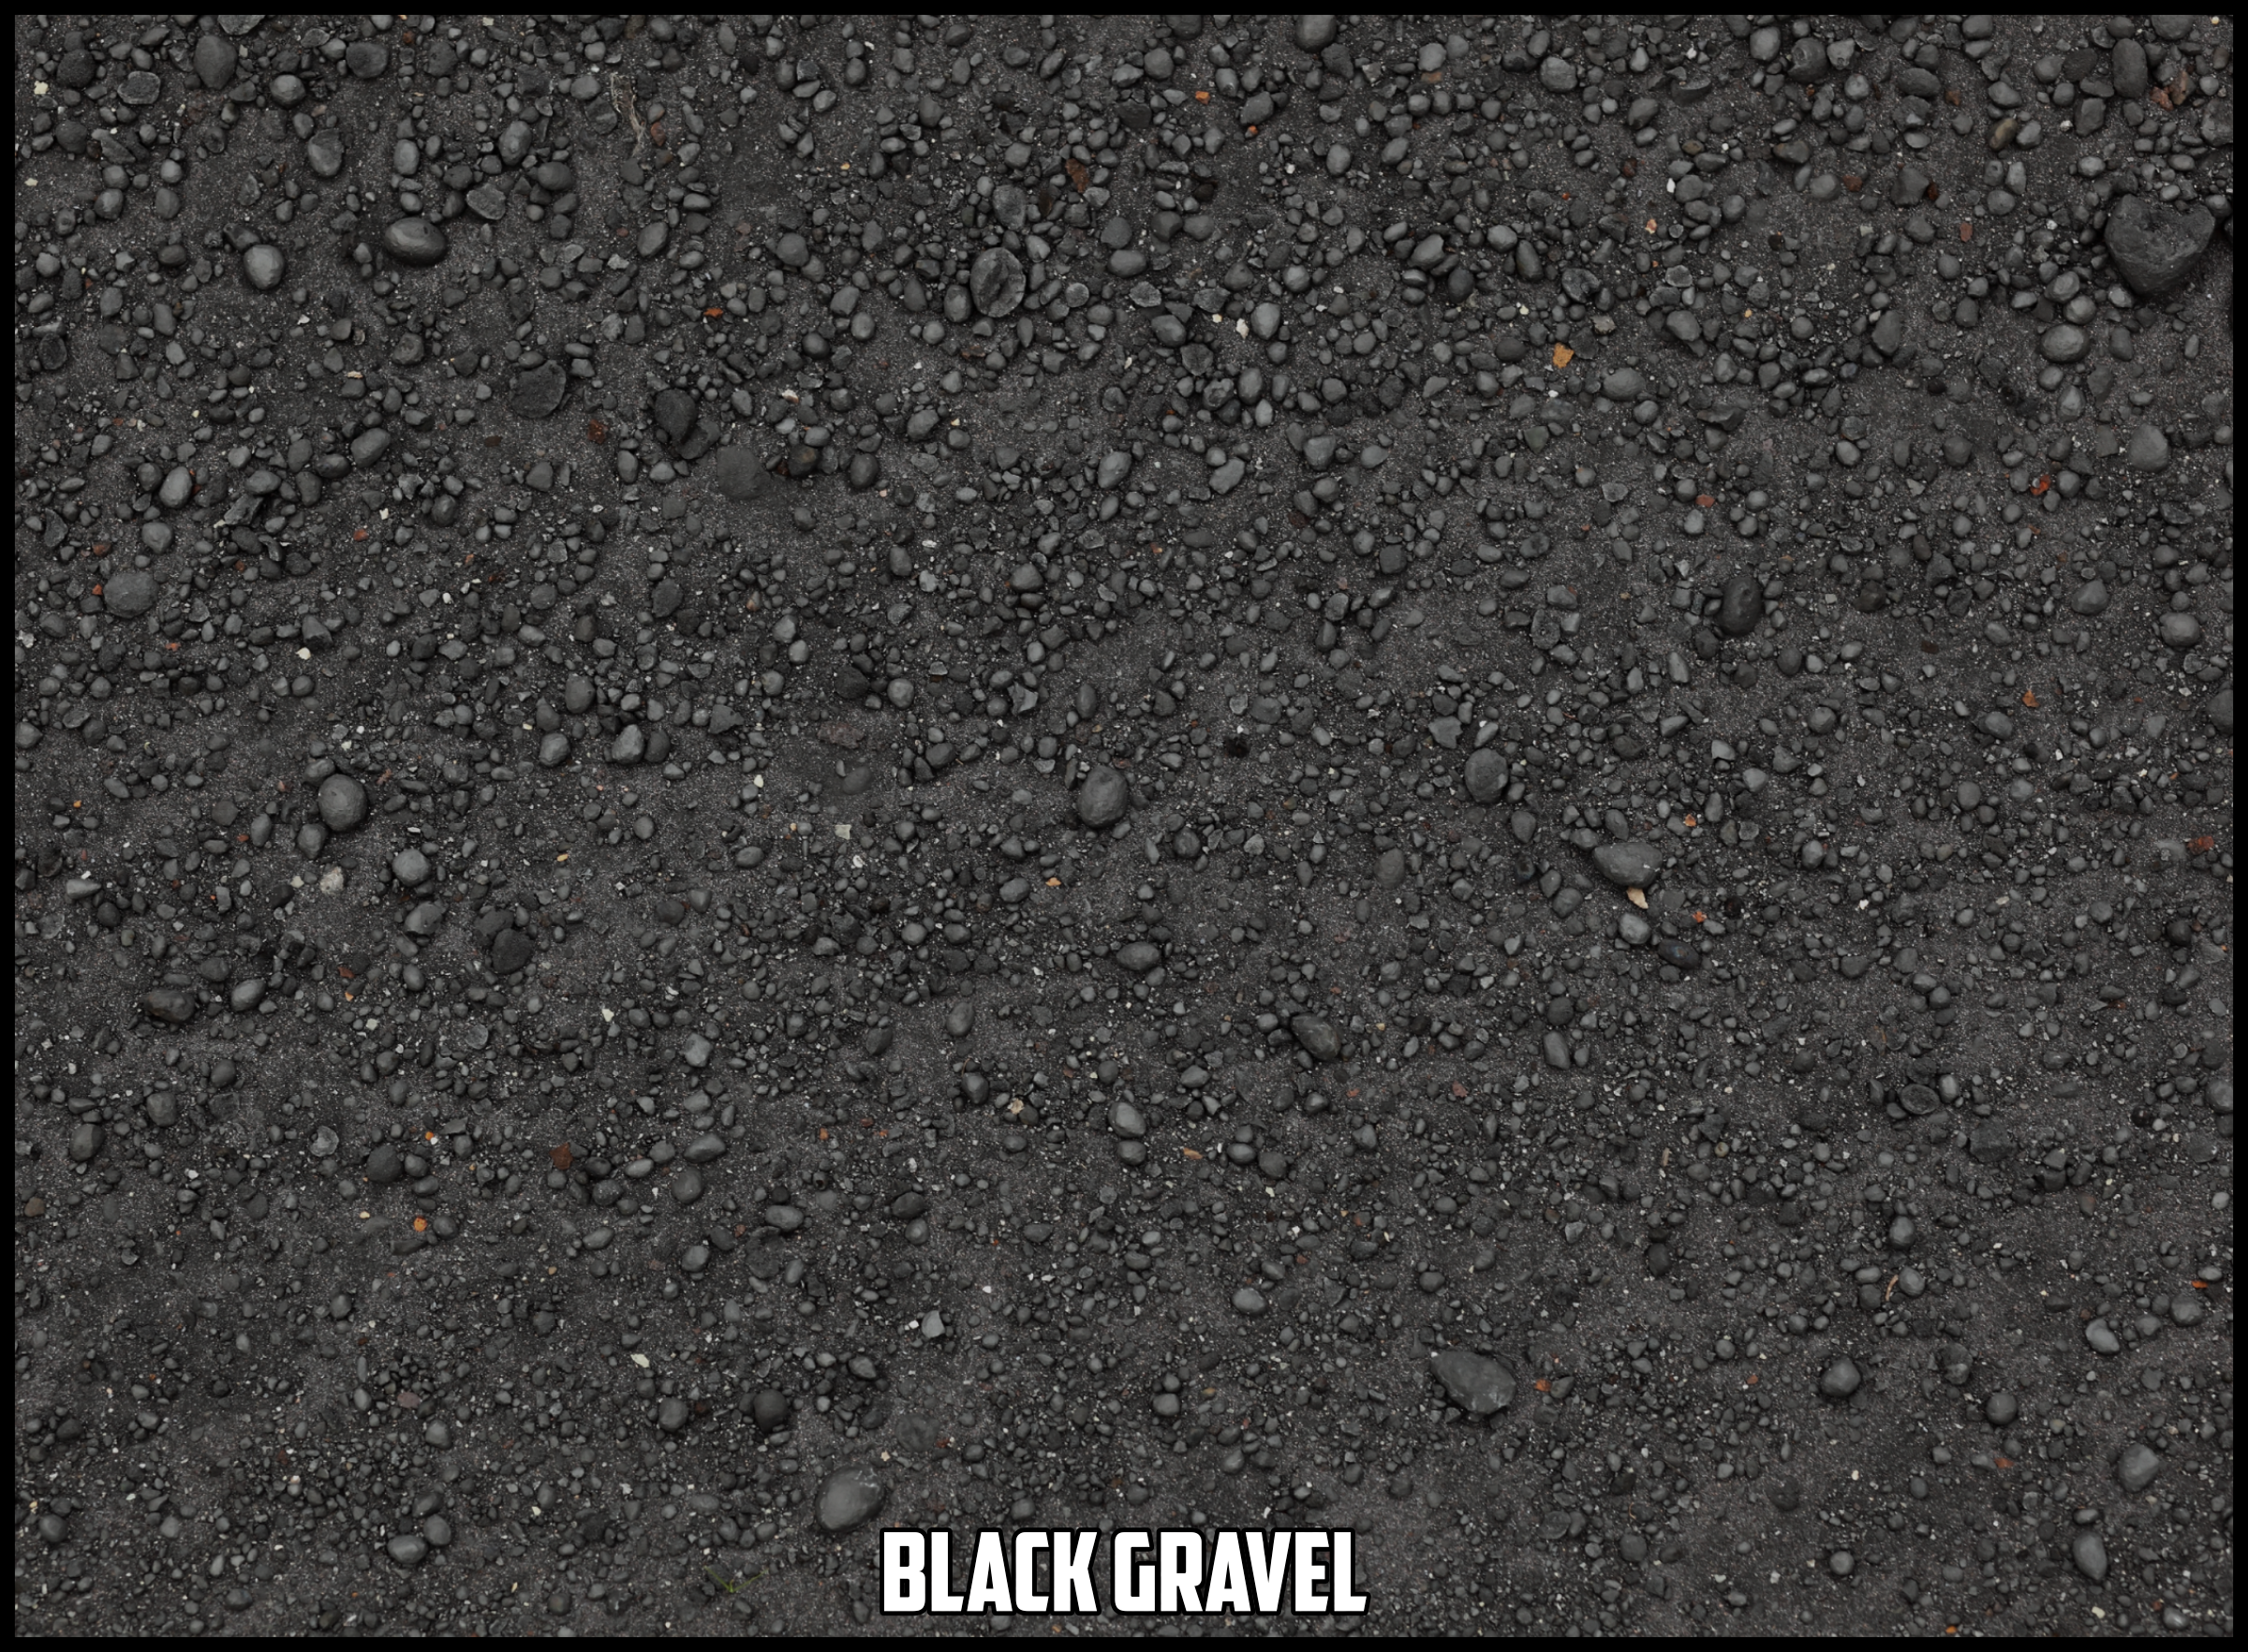 texture-black-gravel-example.png